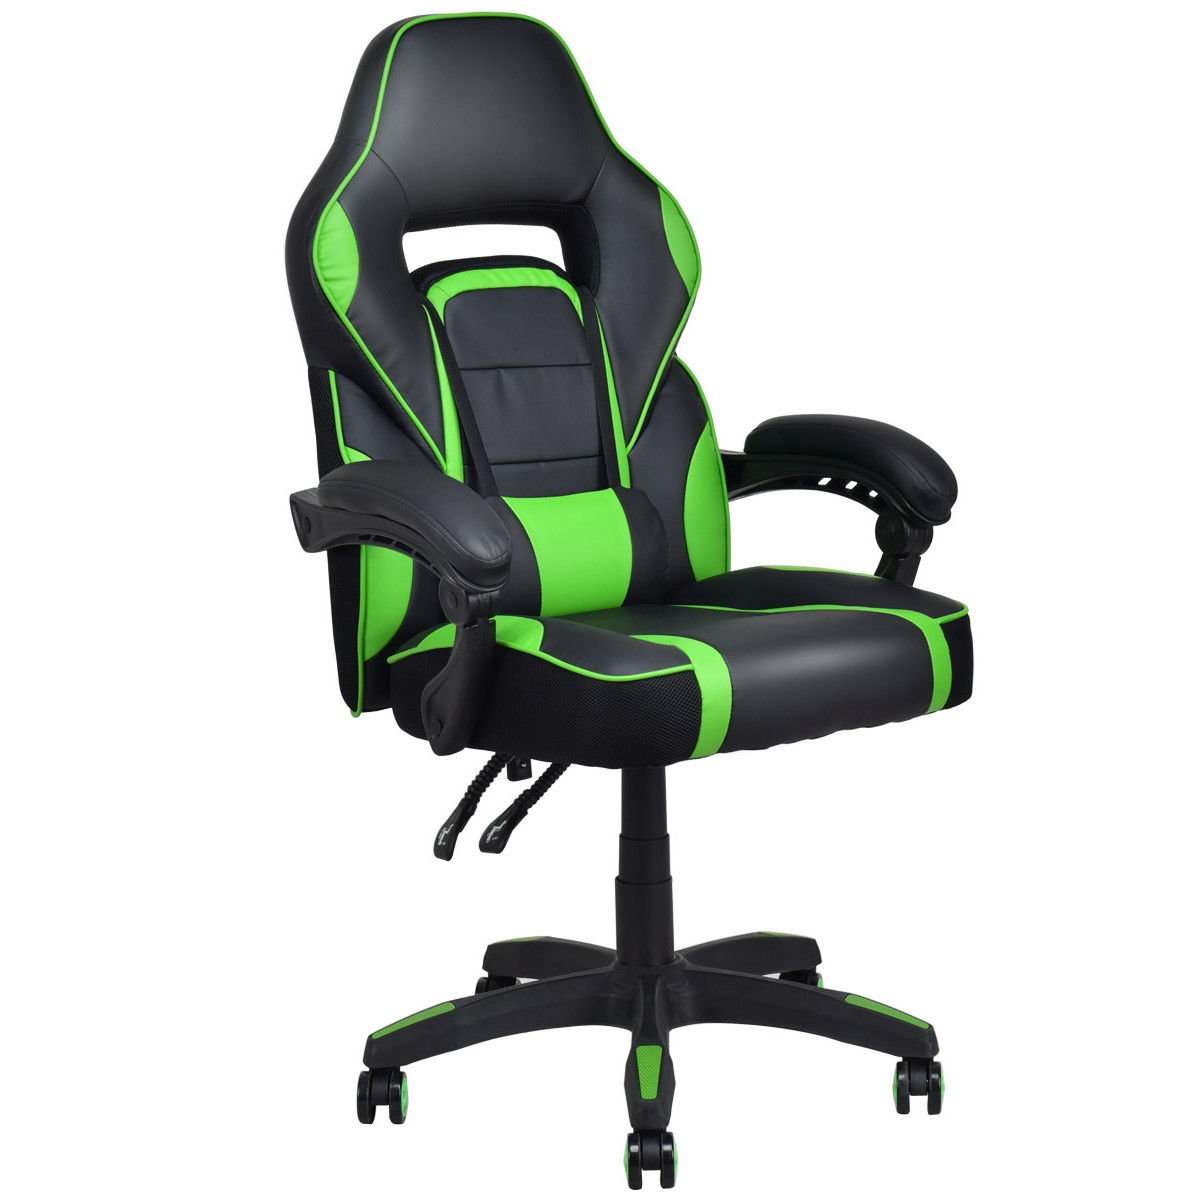 Giantex Gaming Chair Race High Back Reclining Chair Office Swivel Computer Task Desk Chair (Green)